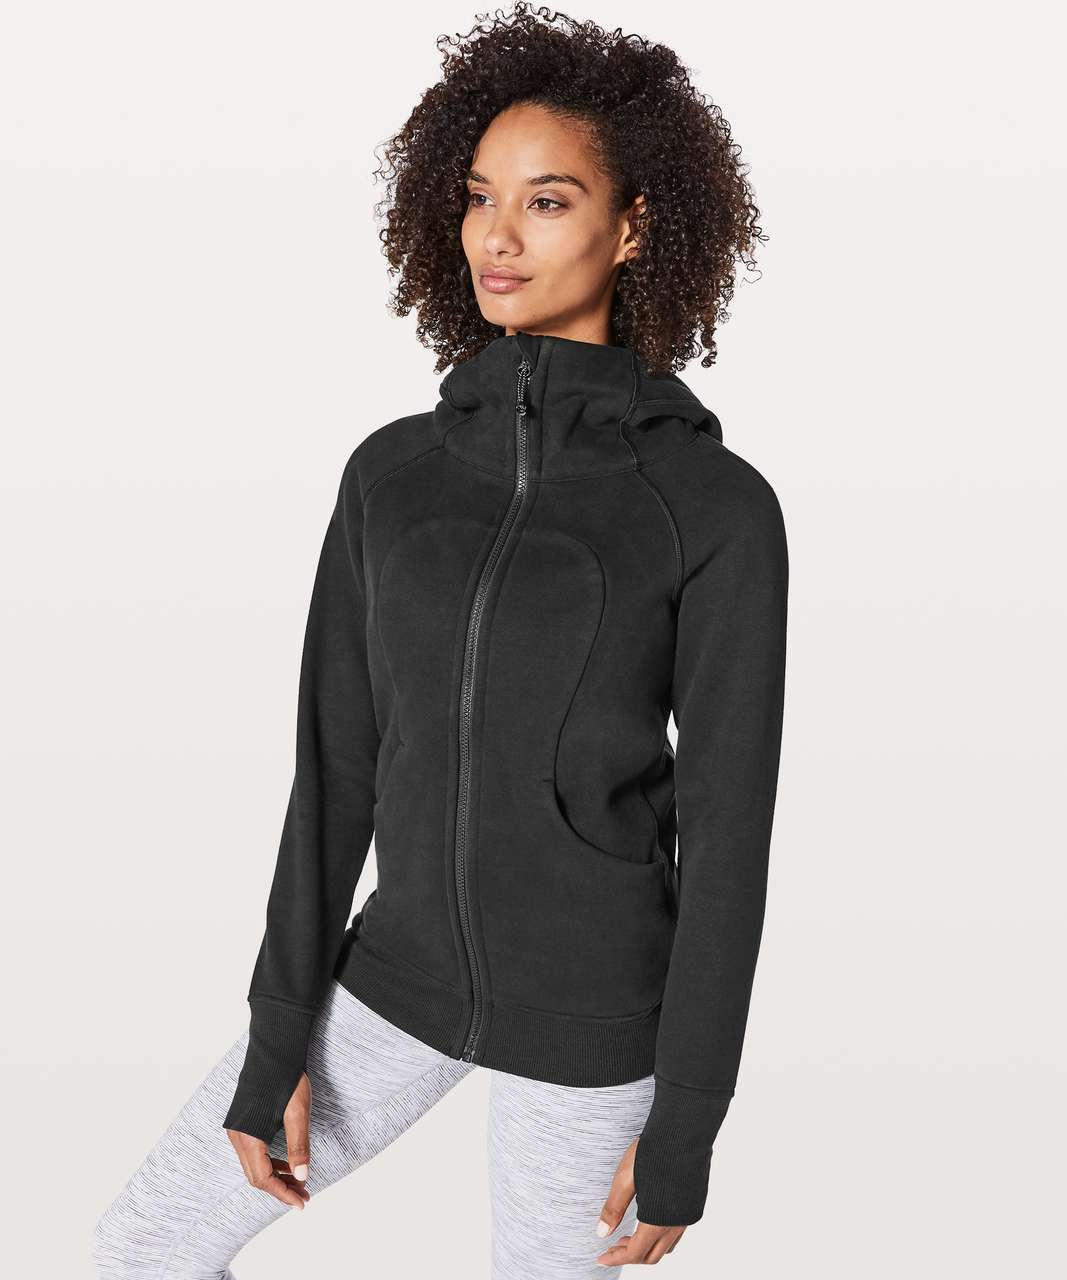 Lululemon Scuba Hoodie *Classic Cotton Fleece - Black